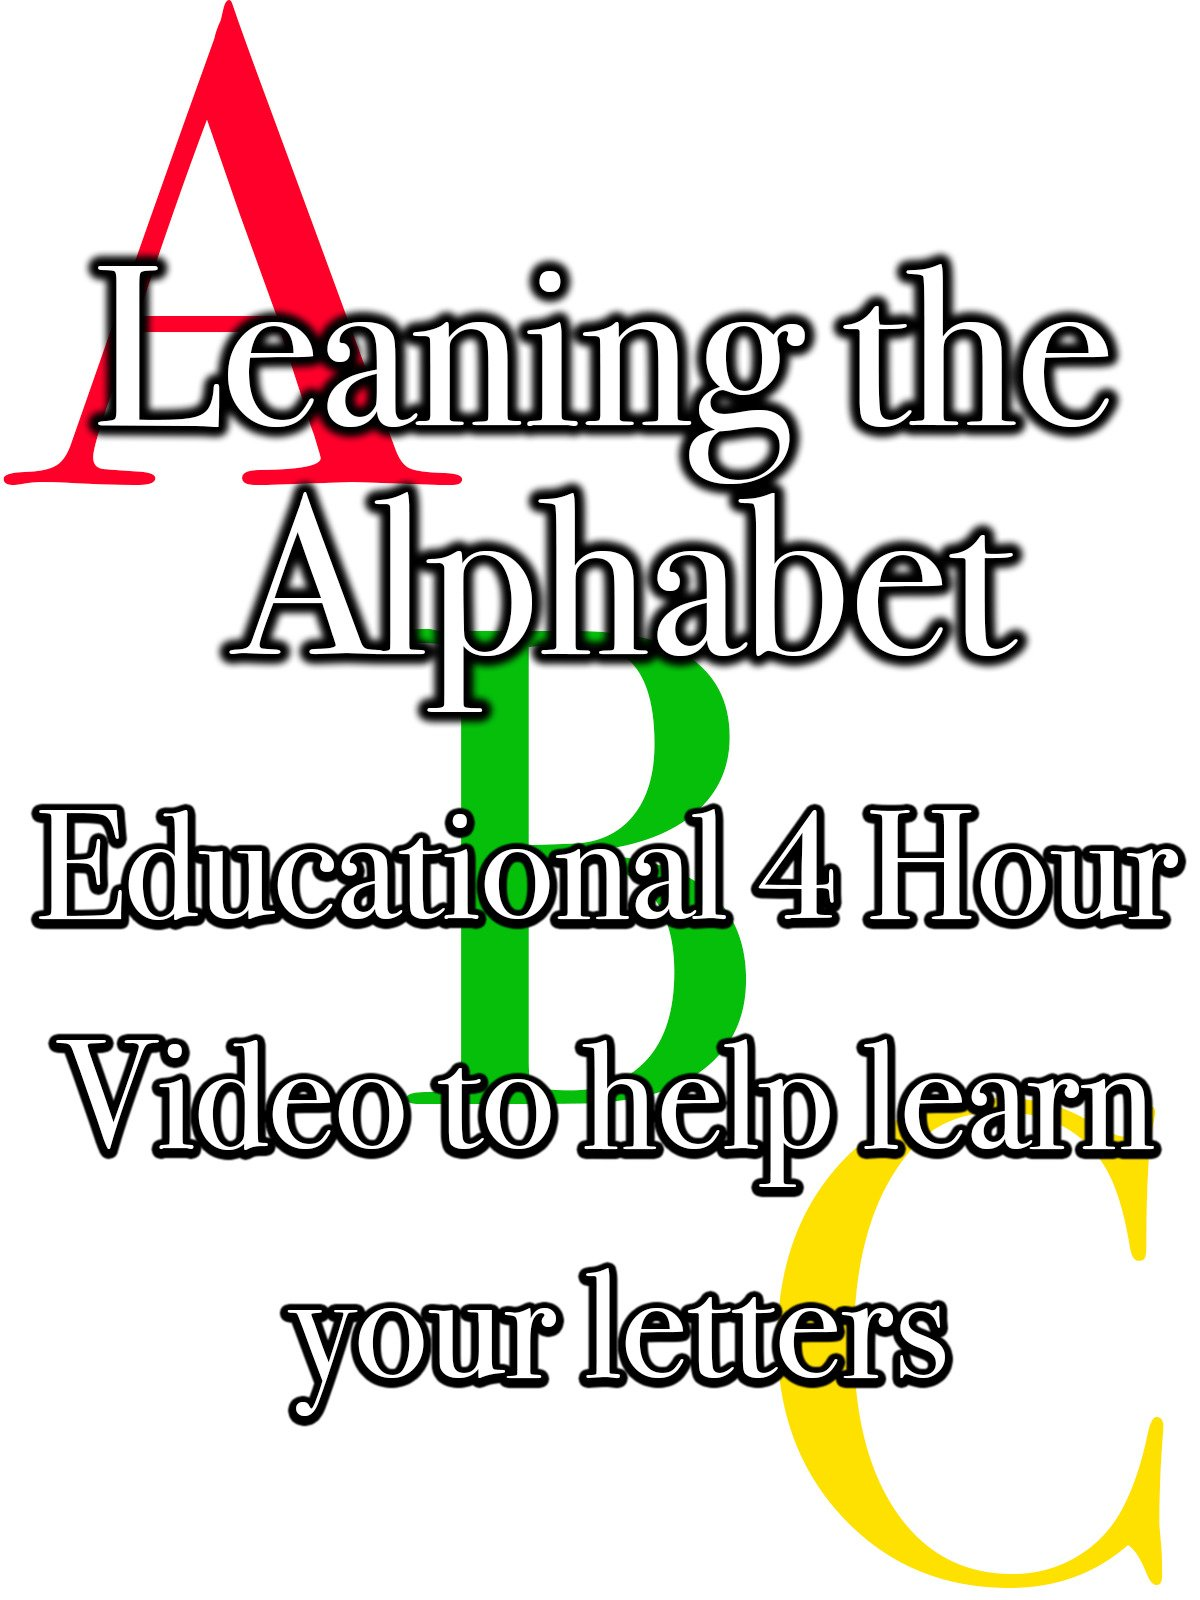 Learning the Alphabet Educational 4 Hour Video to help learn your letters